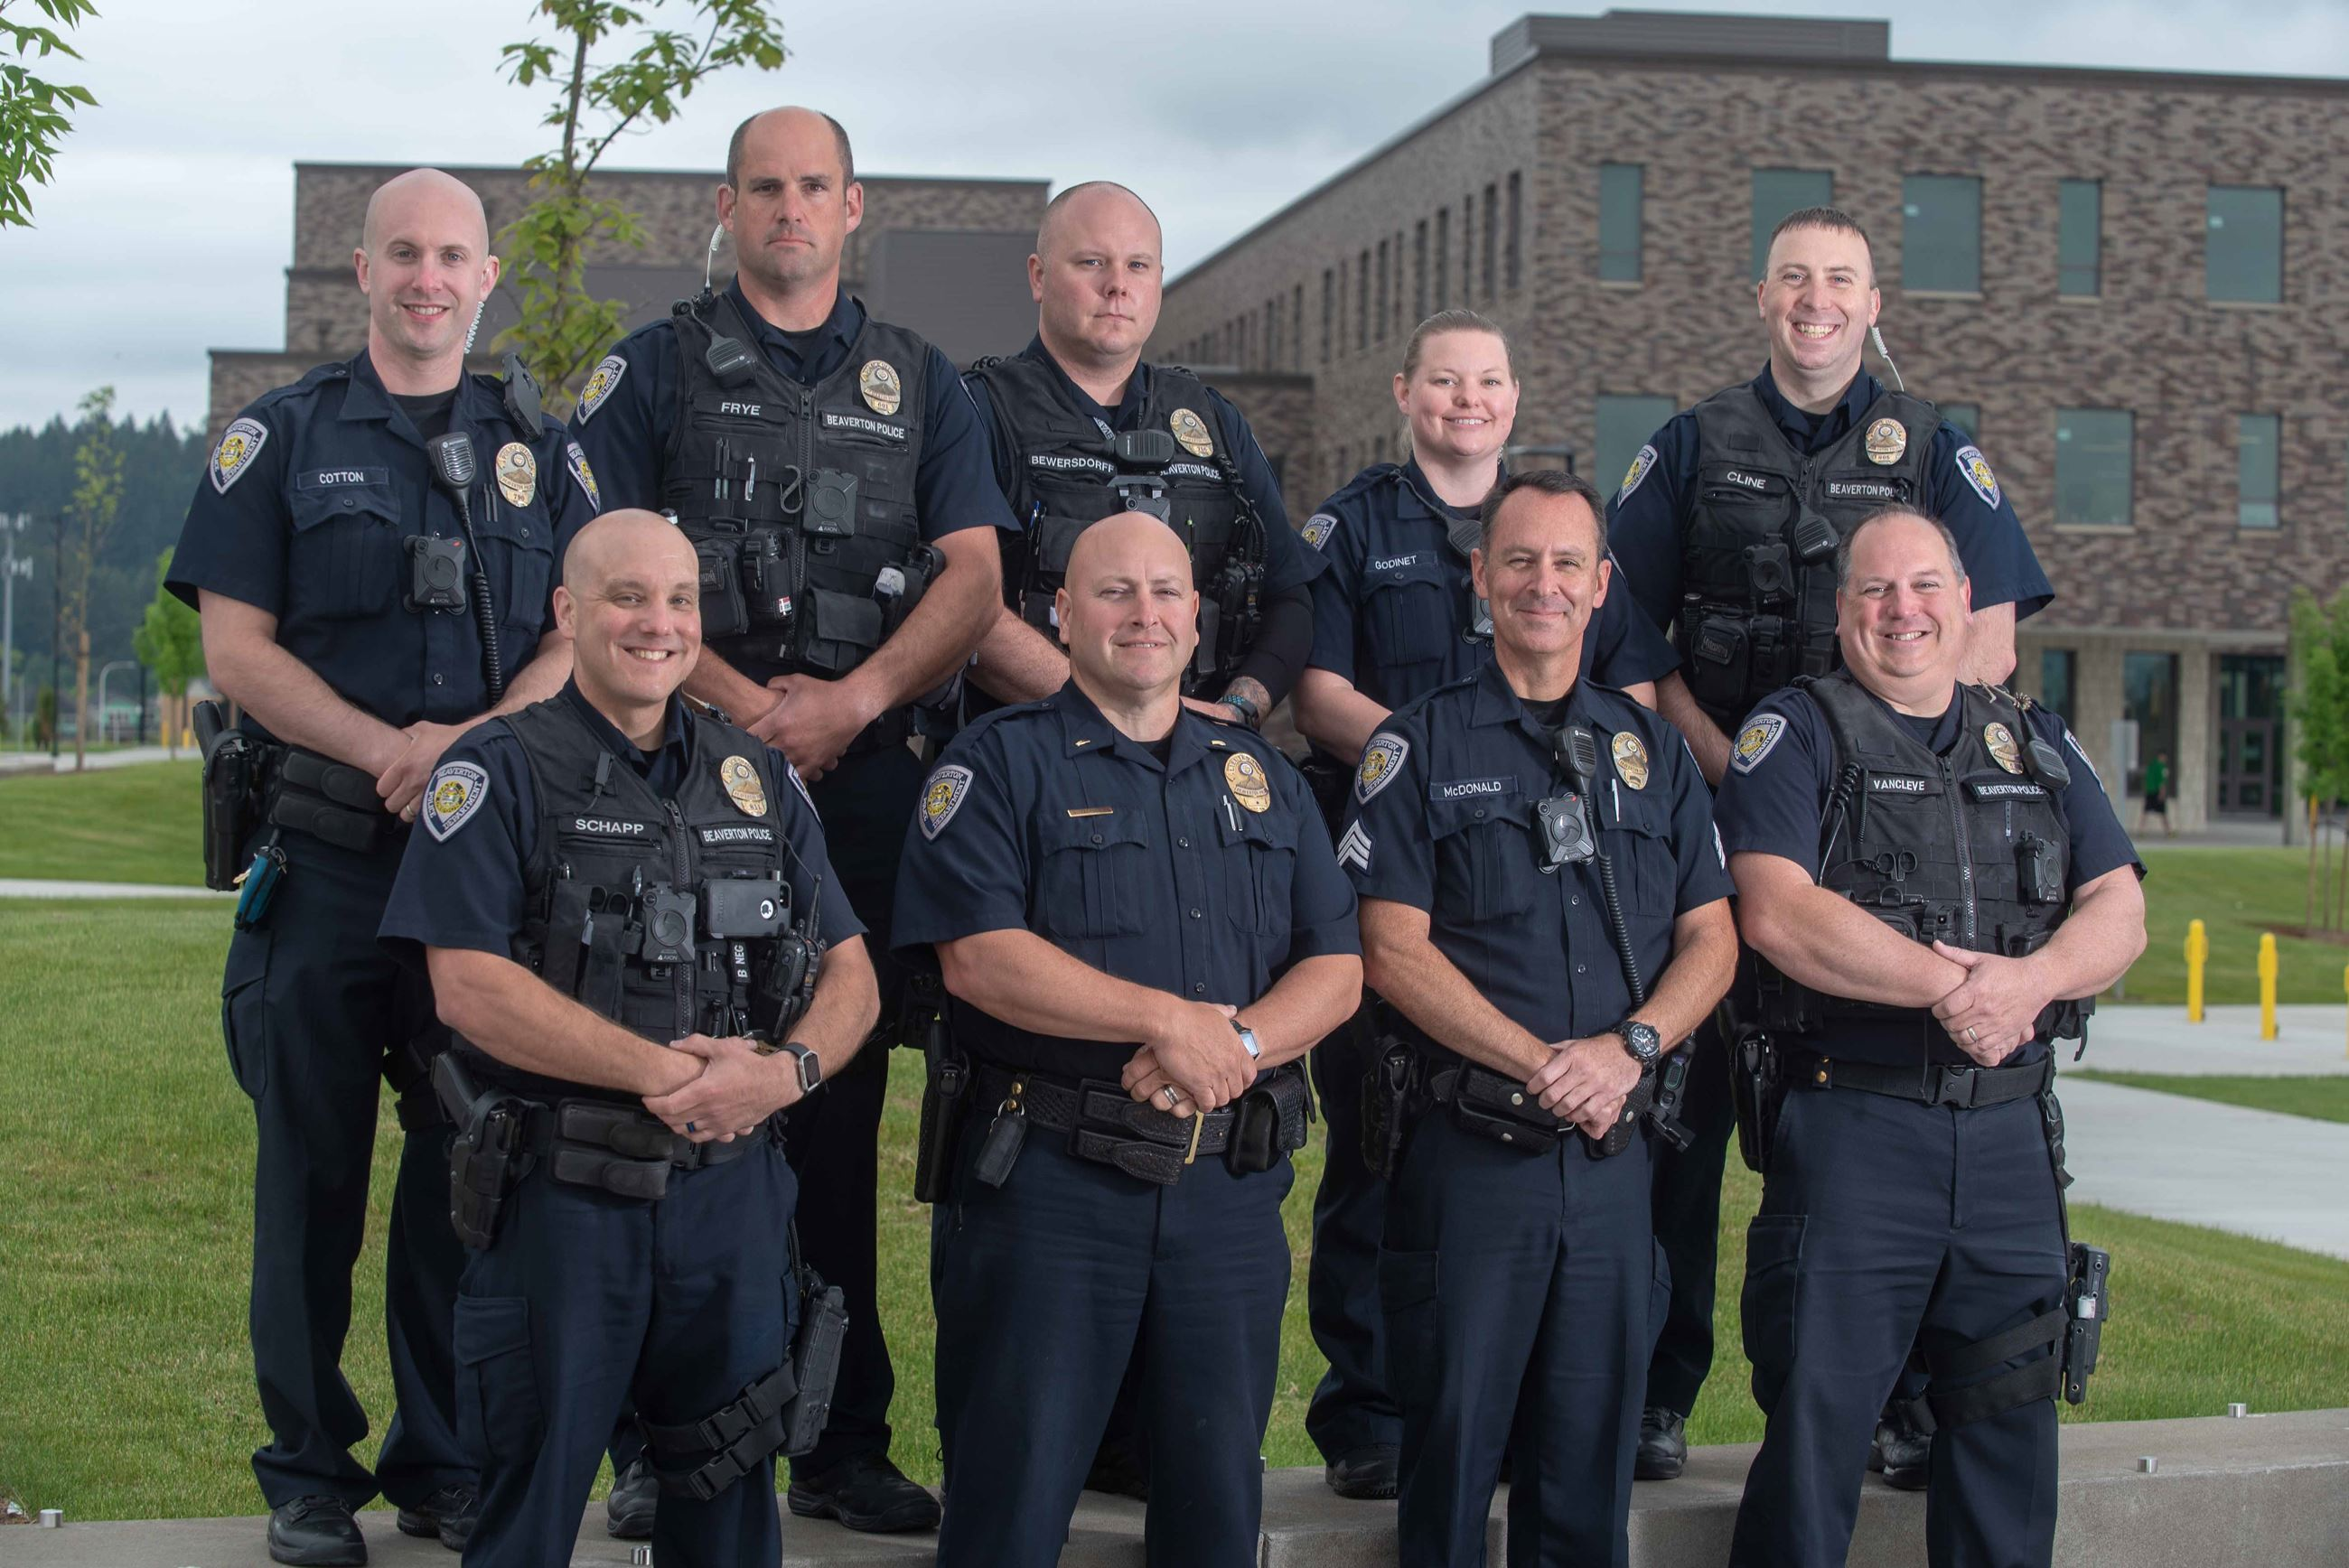 Group photo of all School Resource Officers